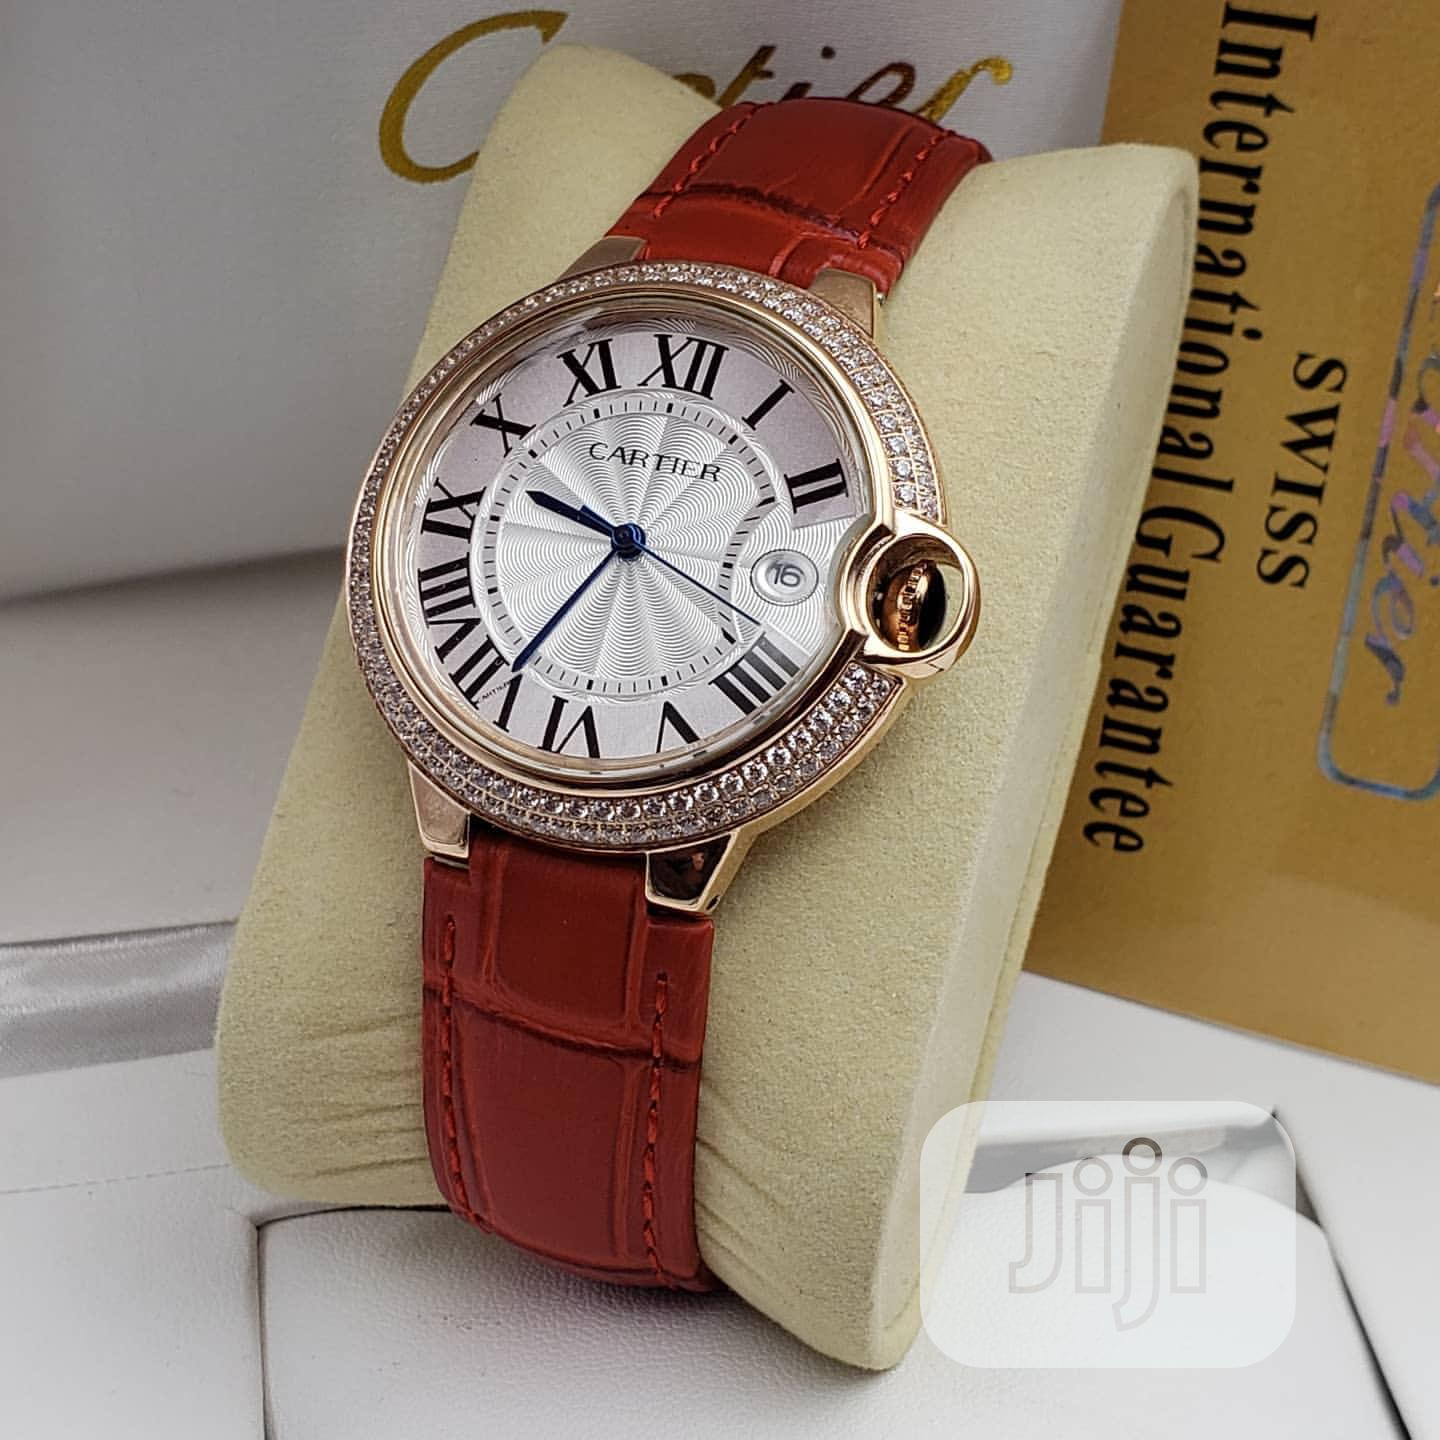 Cartier Woman Watch